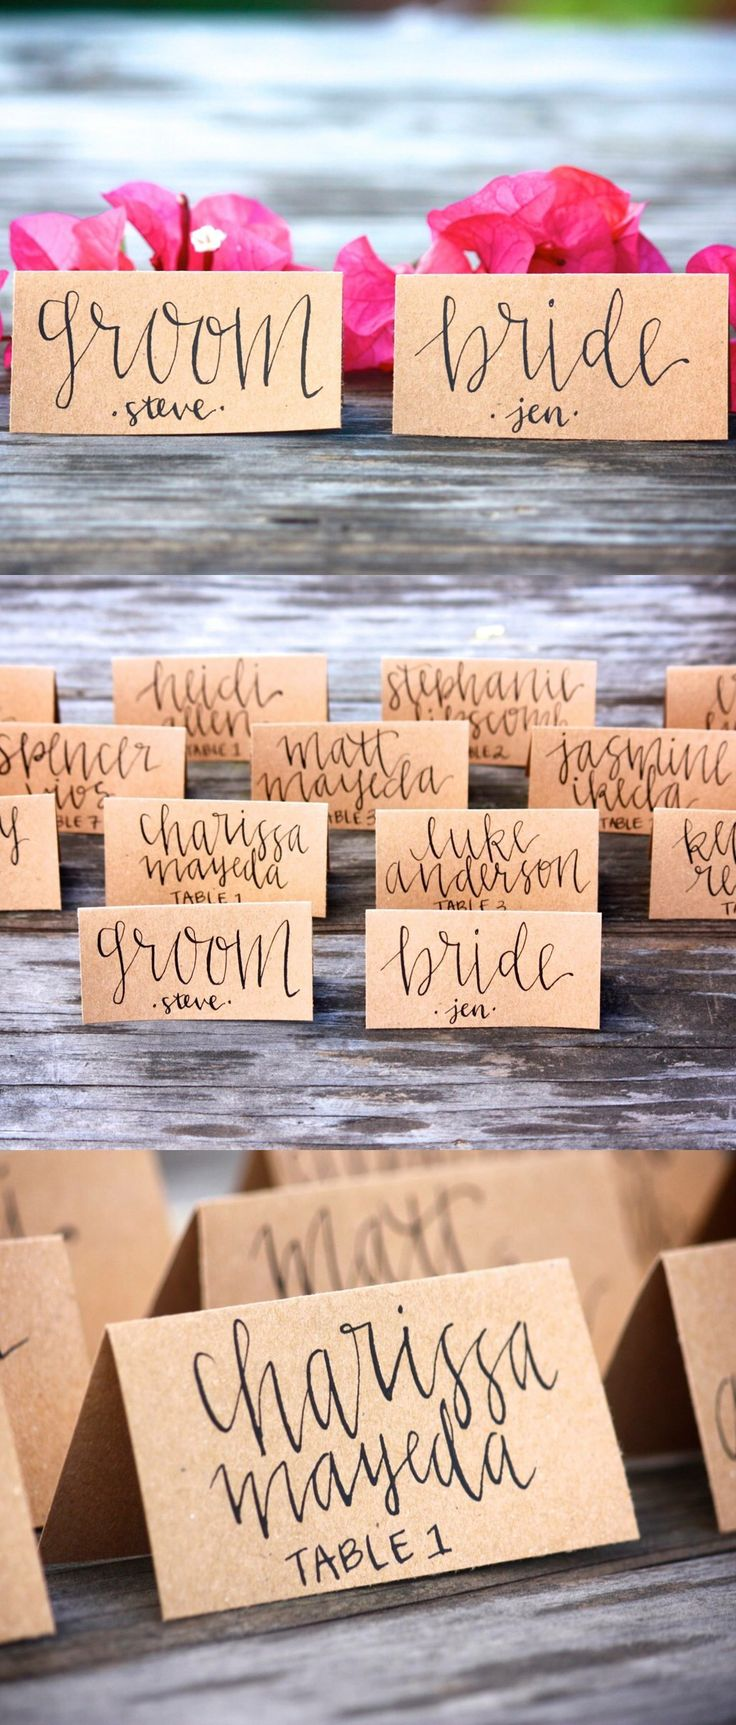 Amazing Dinner Party Name Ideas Part - 2: PLACE CARD WEDDING DECOR IDEAS || Wedding Place Cards - Tent Fold - Escort  Card